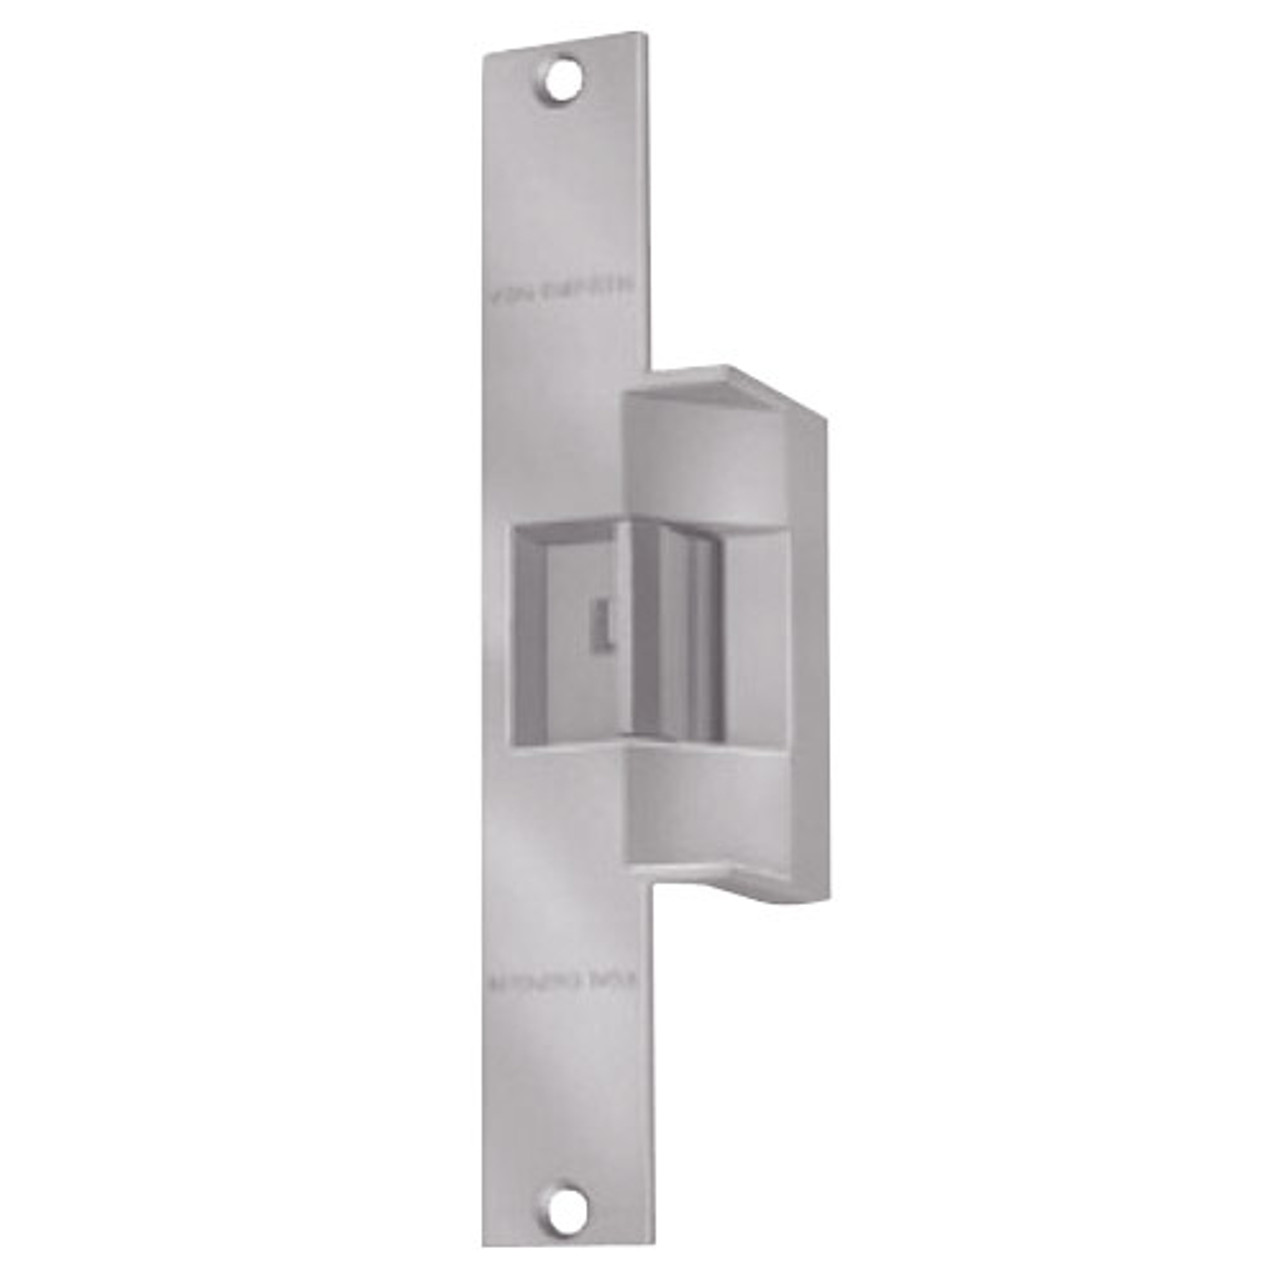 6226-DS-LC-12VDC-US32D Von Duprin Electric Strike in Satin Stainless Steel Finish